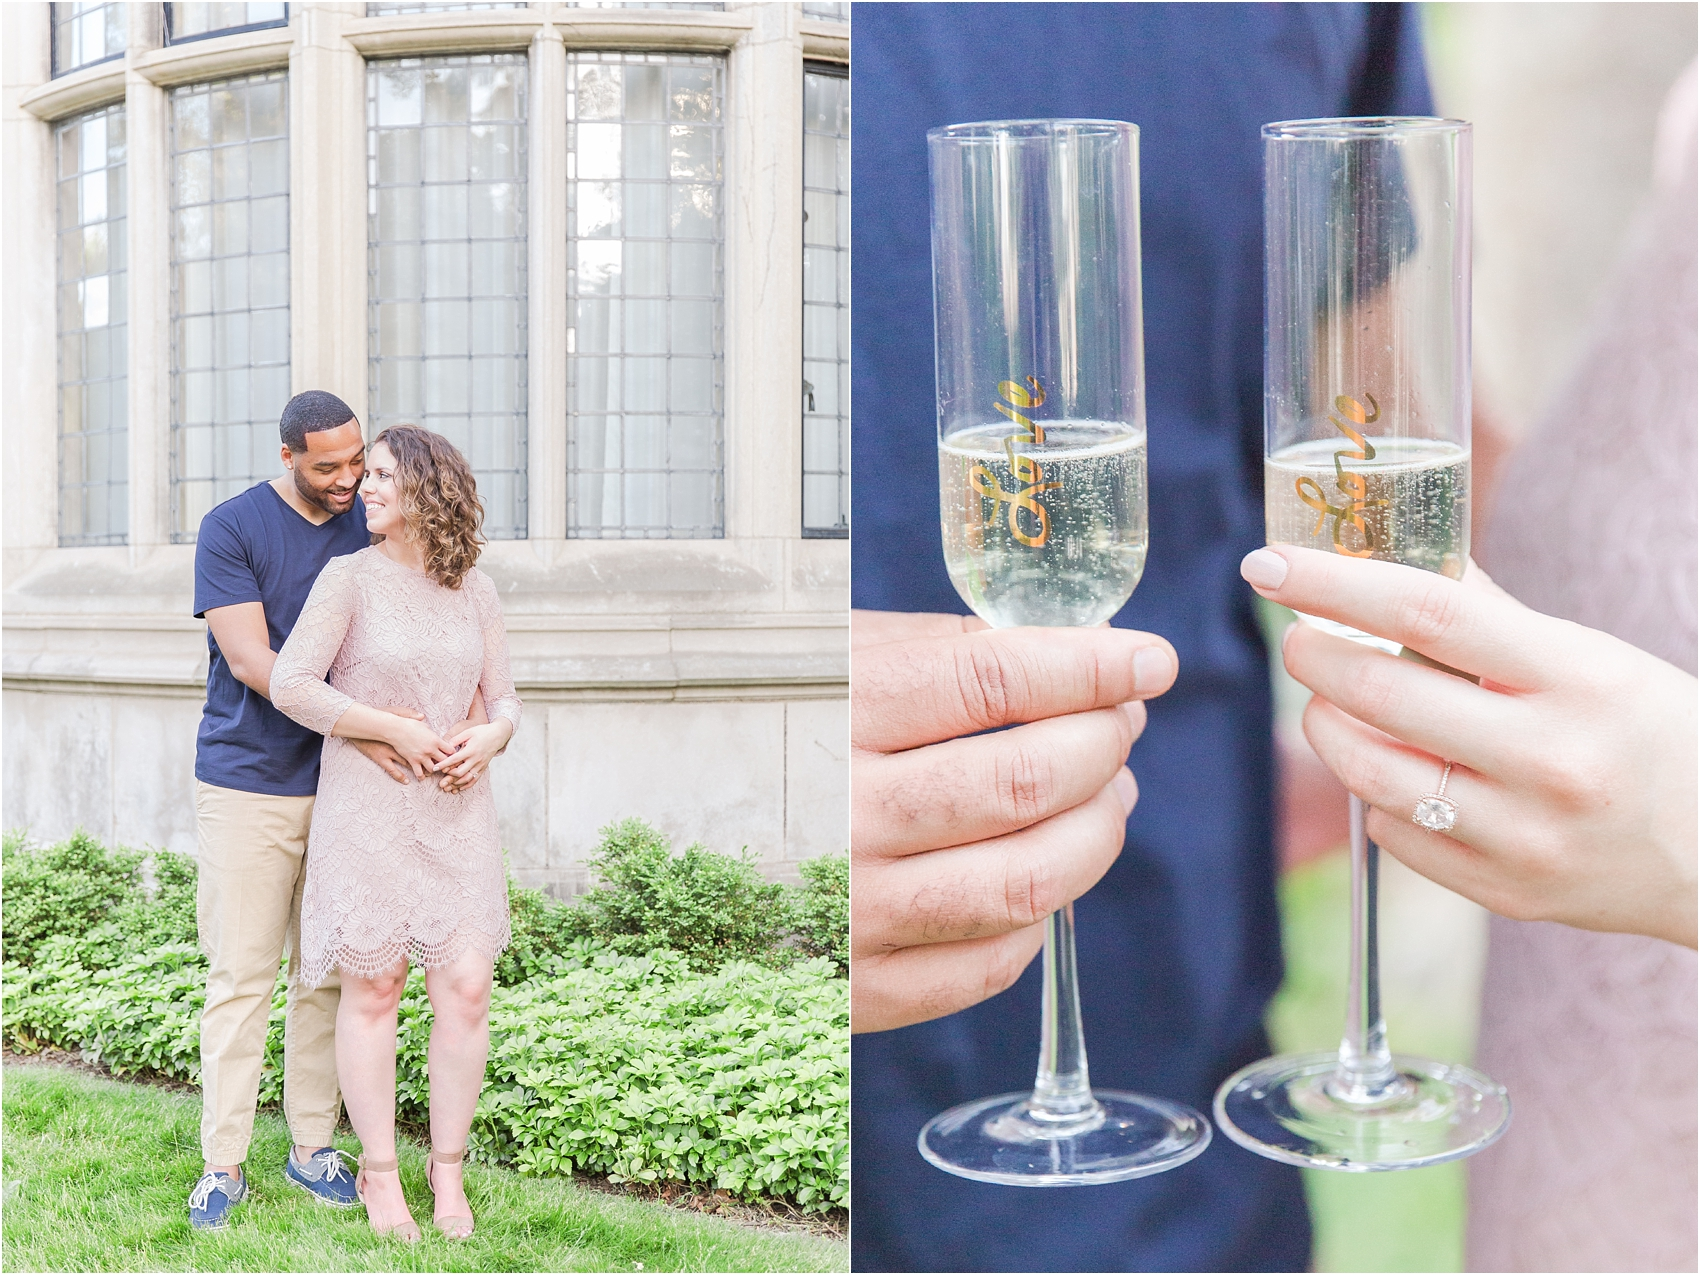 emotional-candid-romantic-engagement-photos-in-detroit-chicago-northern-michigan-by-courtney-carolyn-photography_0033.jpg